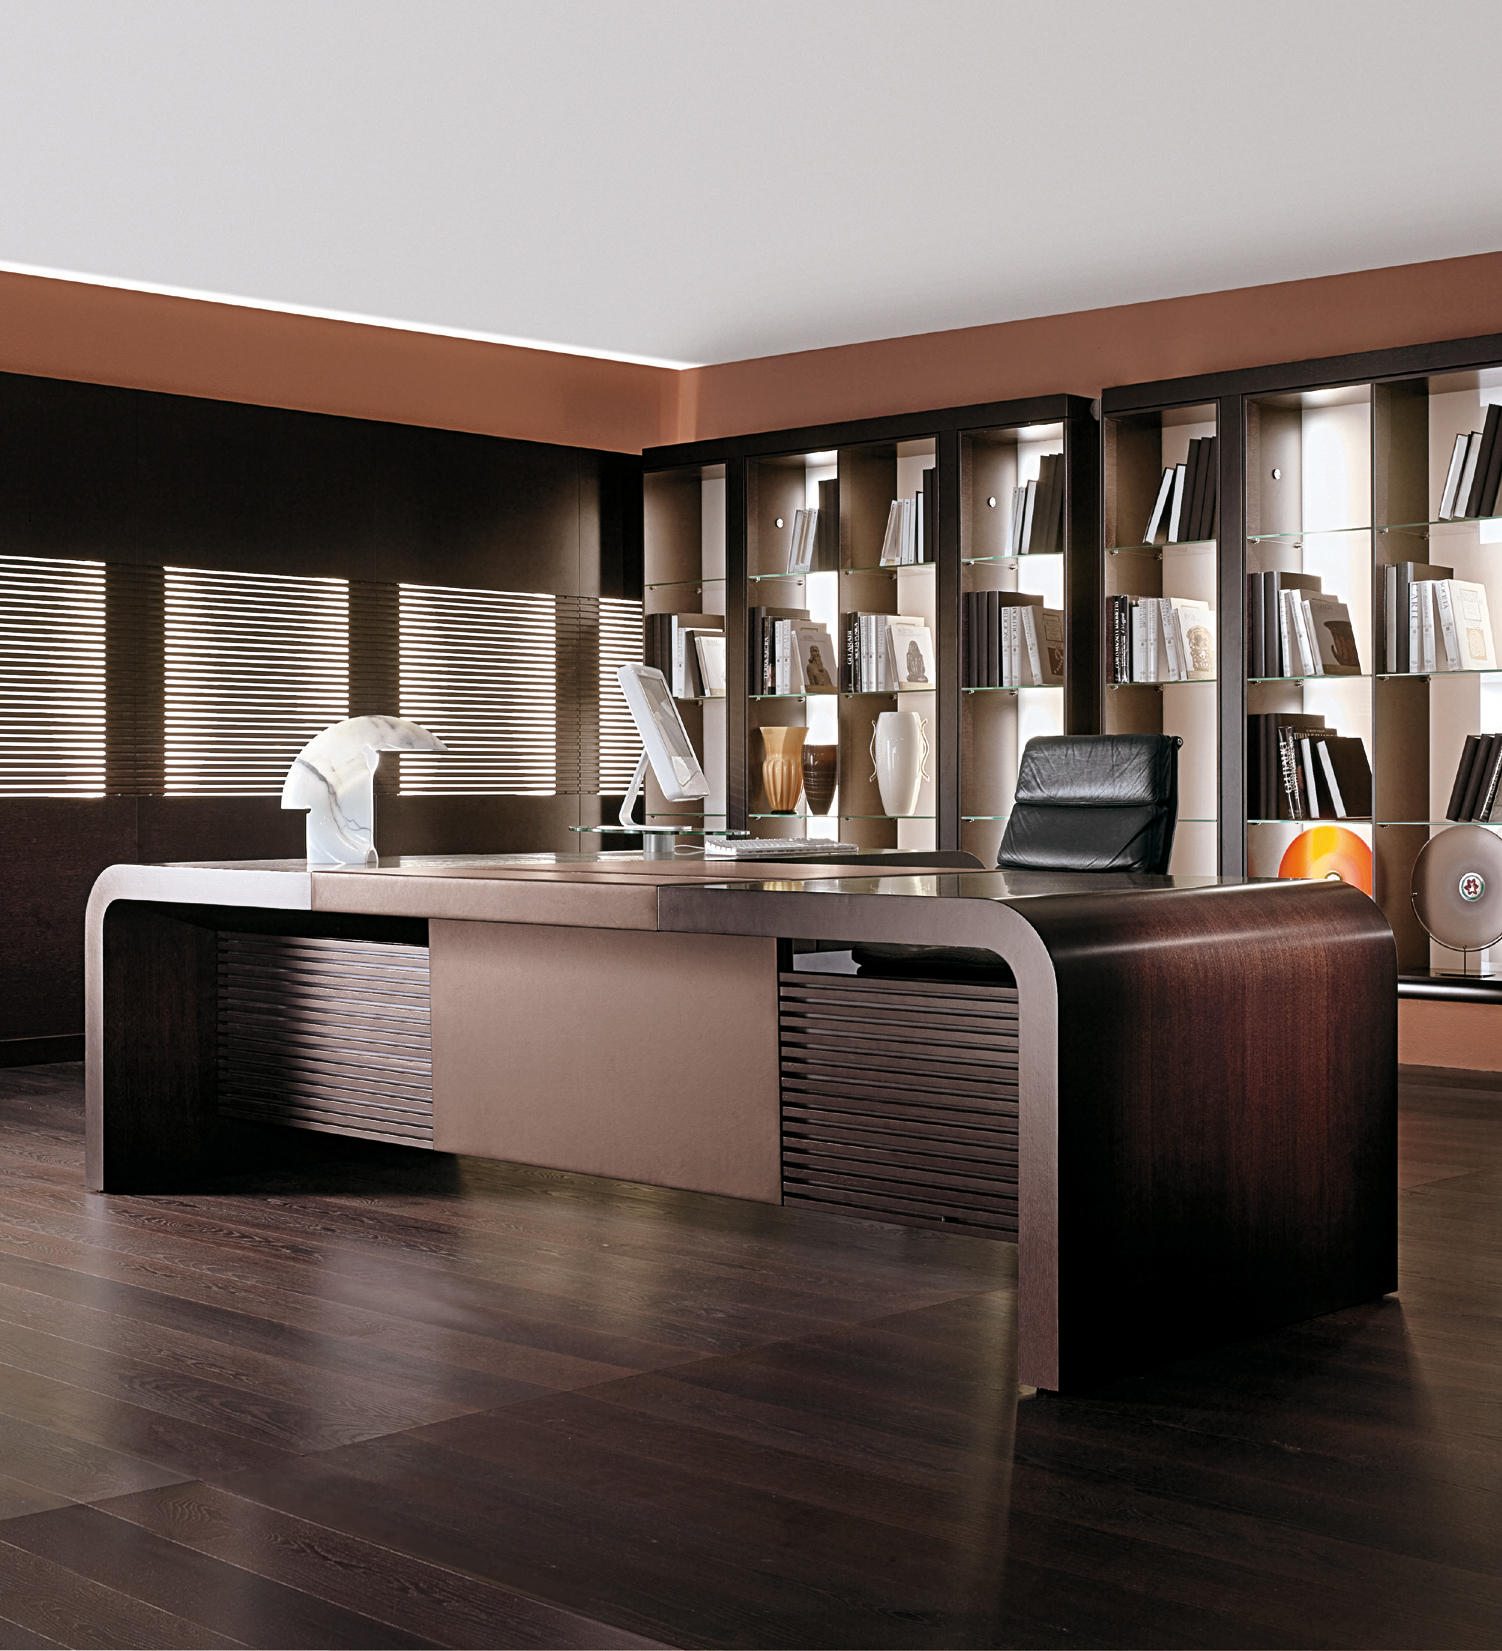 Modern Chairs Top 5 Luxury Fabric Brands Exhibiting At: TAU - Desks From ULTOM ITALIA